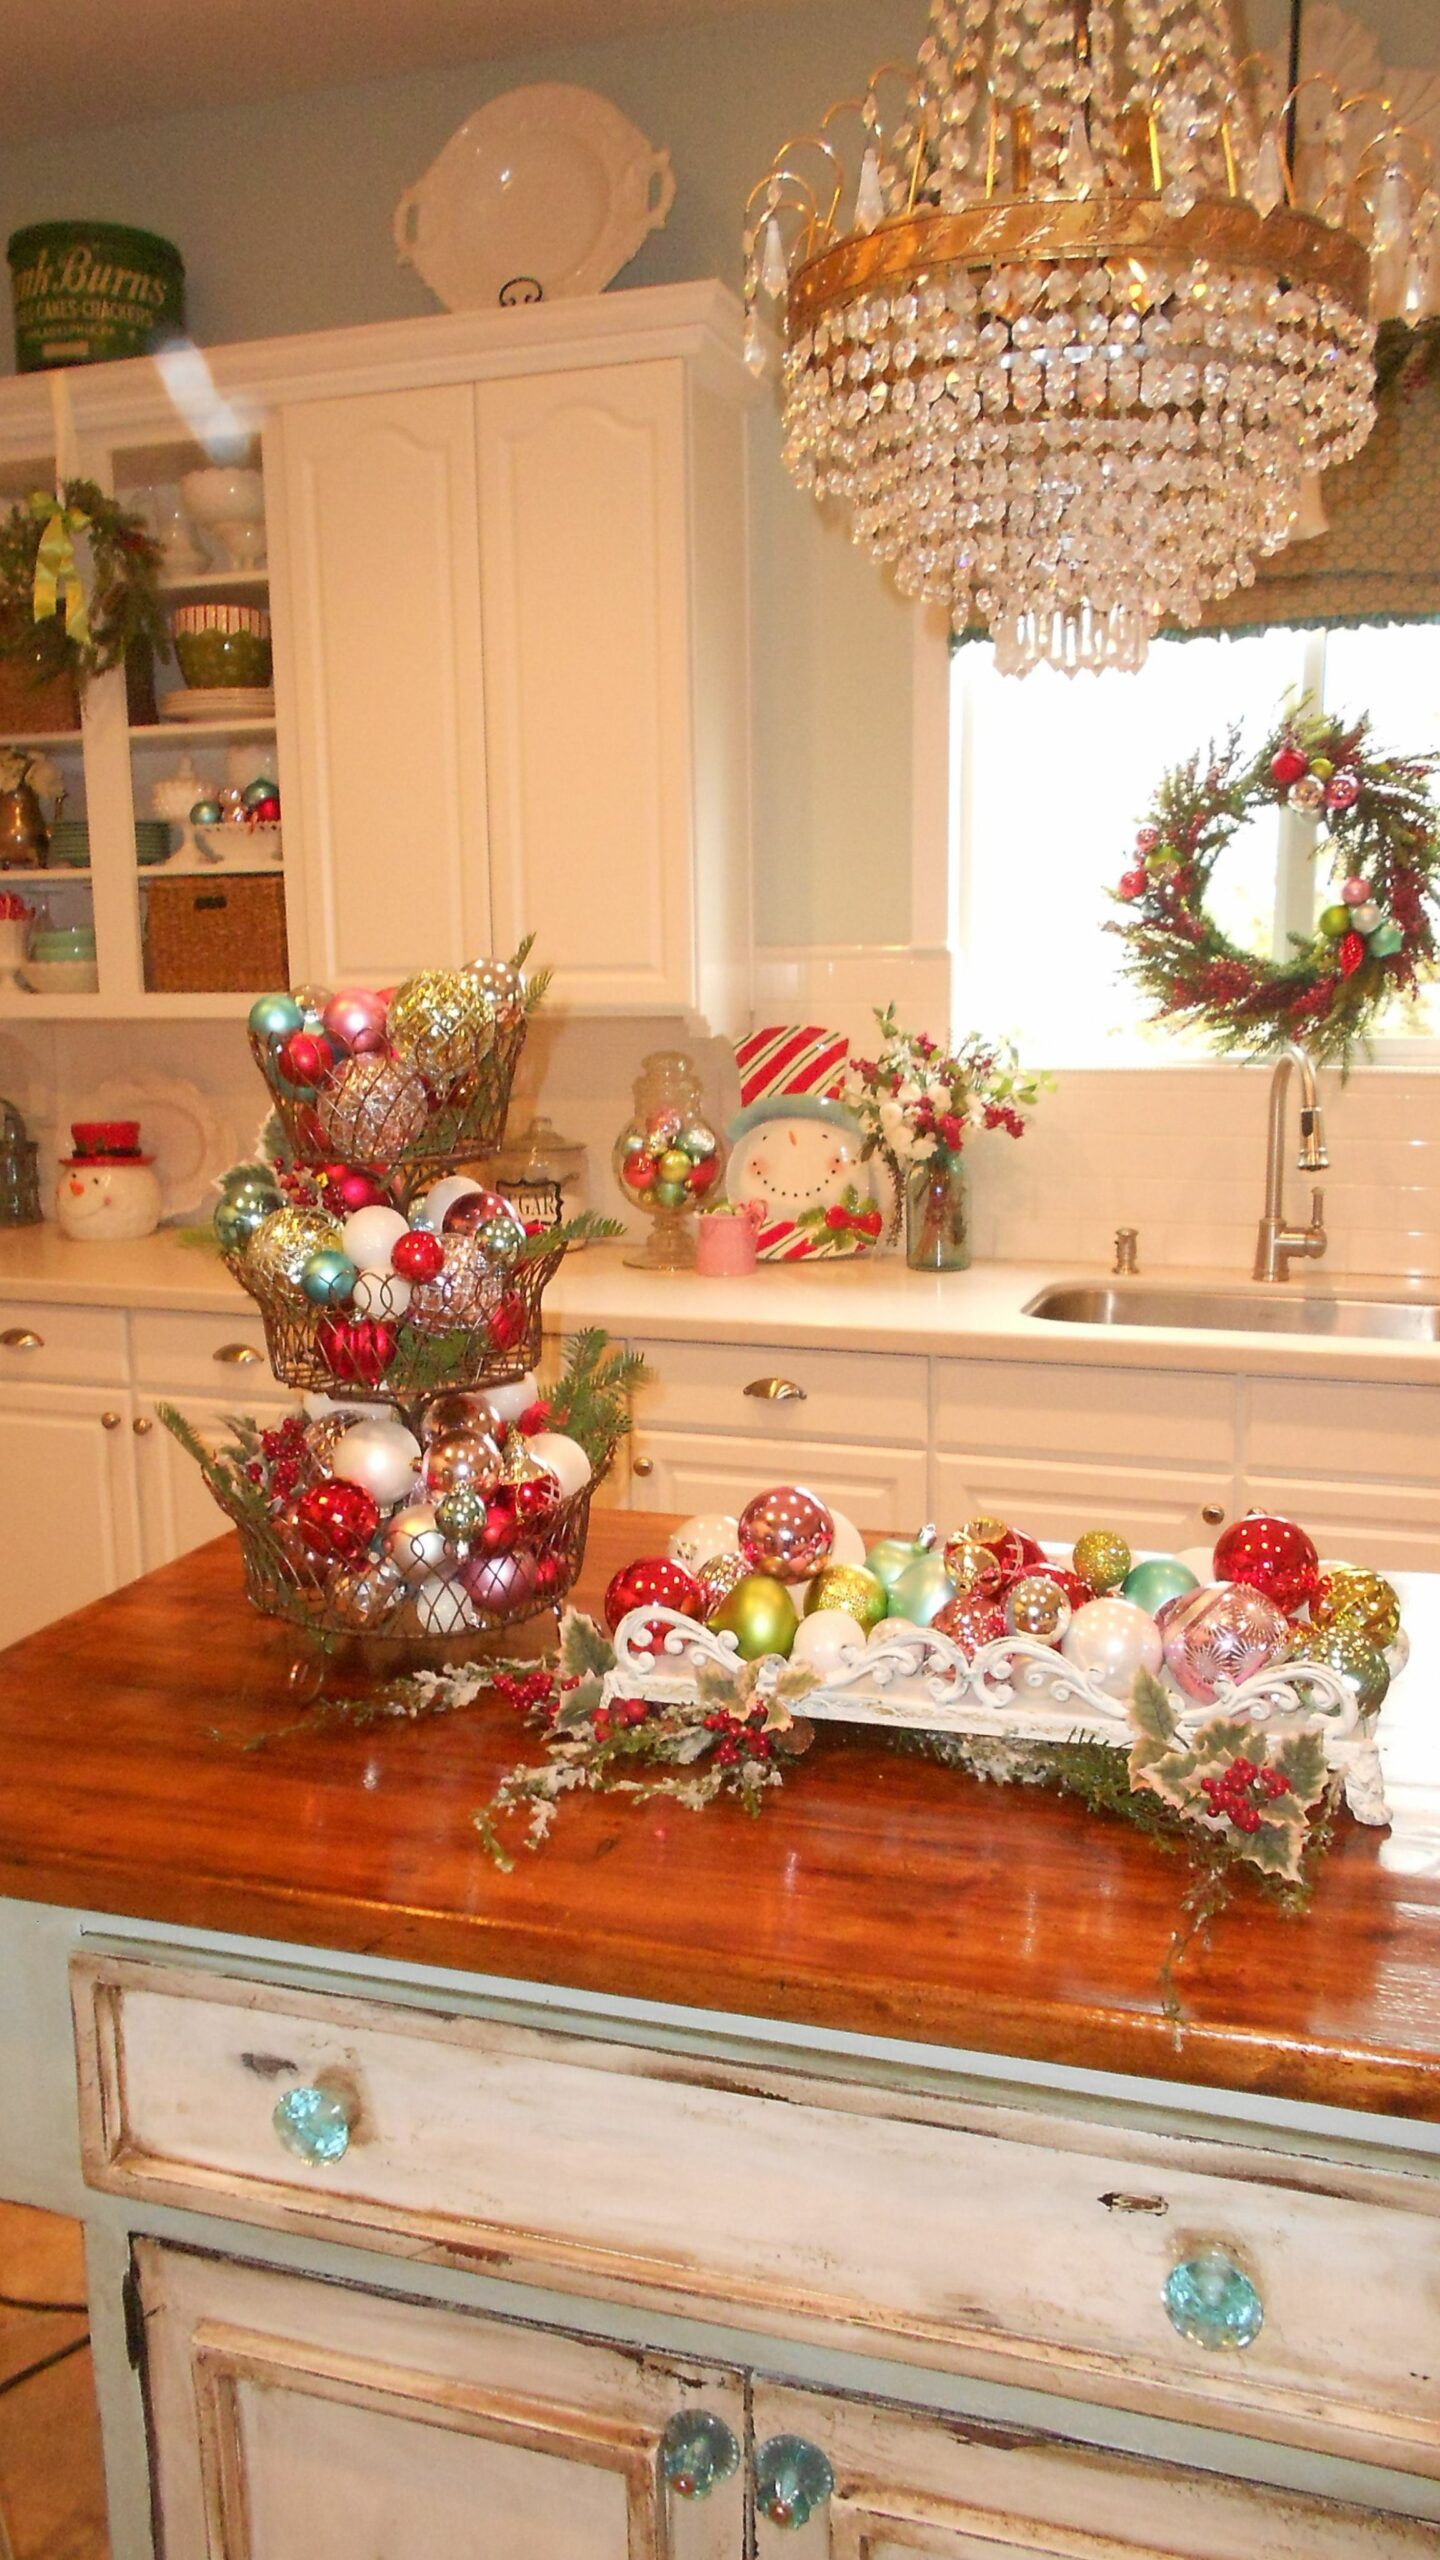 Top 9 Christmas Decorations Ideas For Kitchen | Christmas kitchen ..